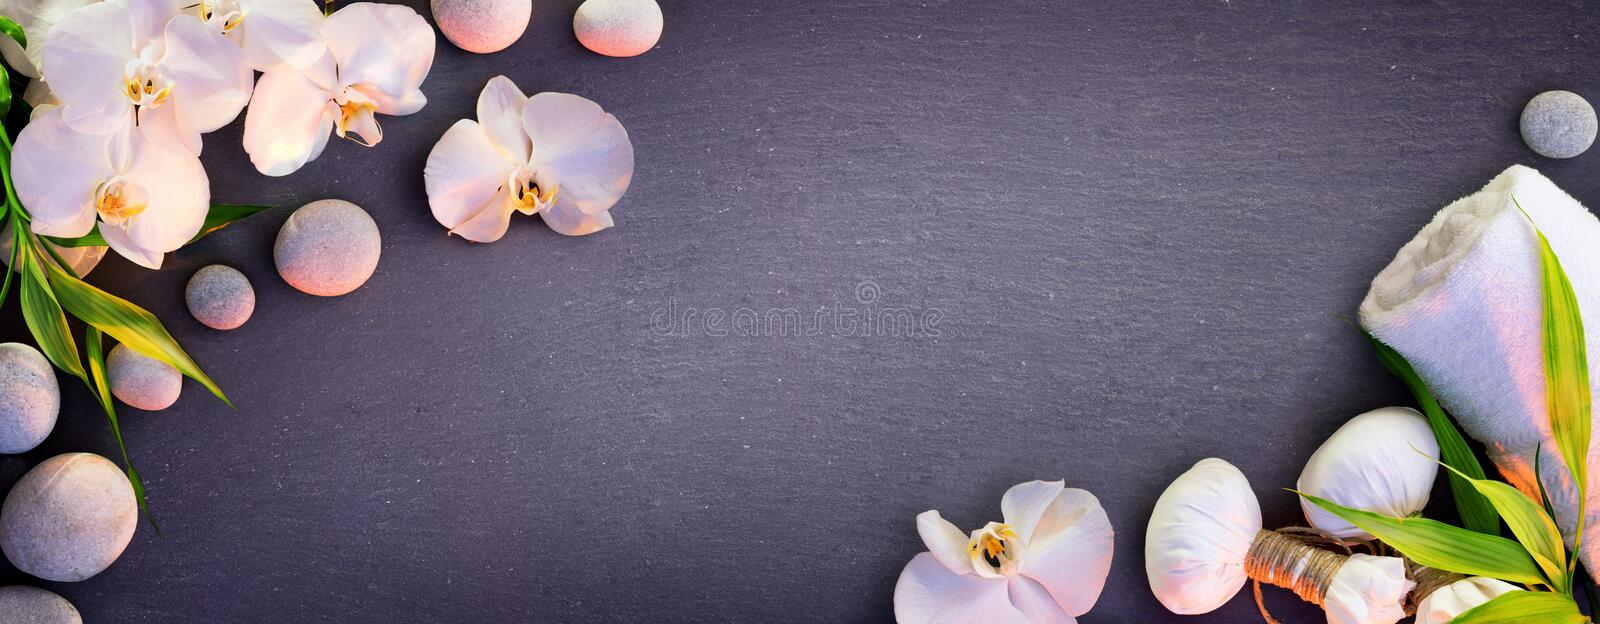 Spa Concept - White Orchid And Massage Stones royalty free stock photography